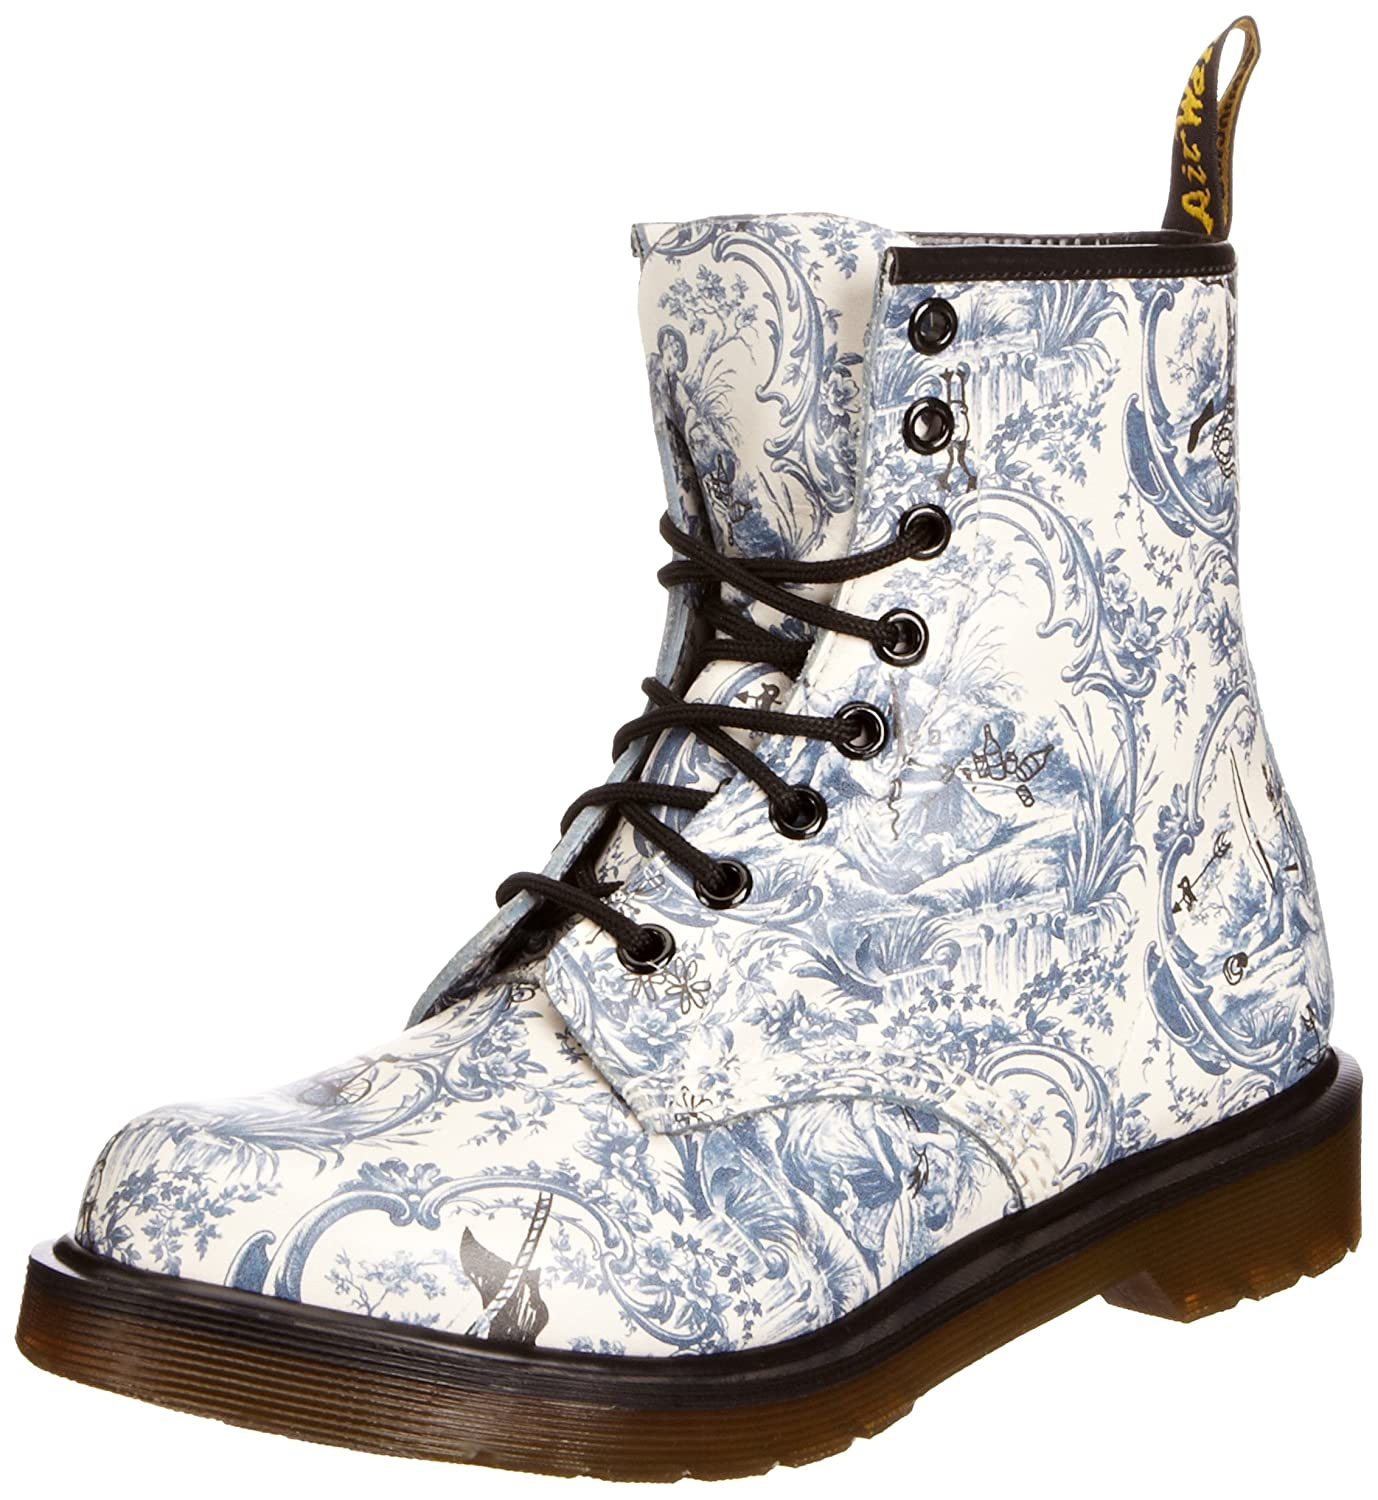 Dr. Martens 1460 Originals Eight-Eye Lace-Up Boot B071V61YWL 9 B(M) US|Blue